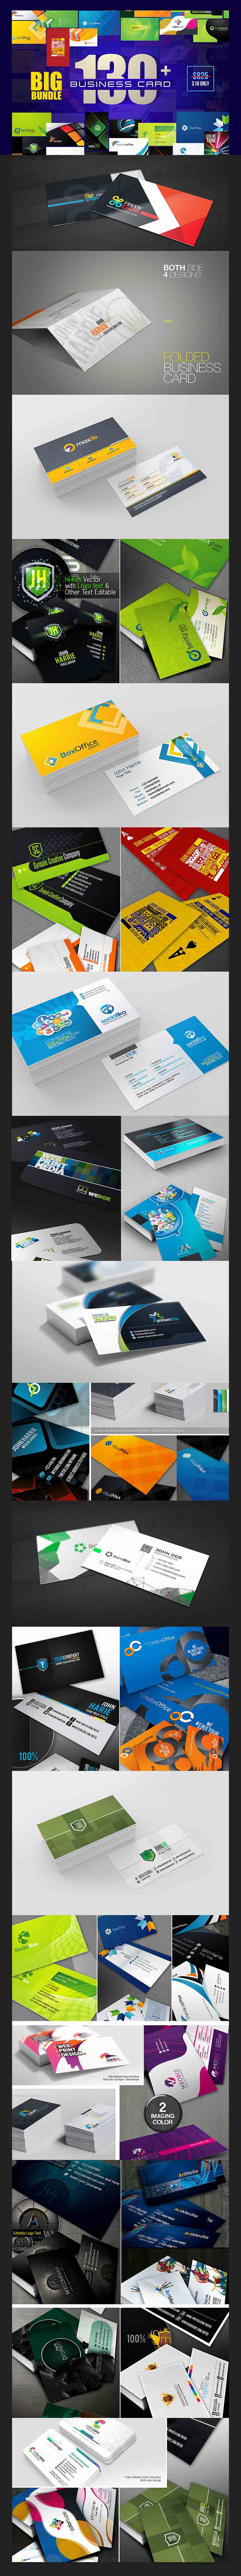 Entire Shop - Business Presentation & Print Bundle | Preview - 7 business Card